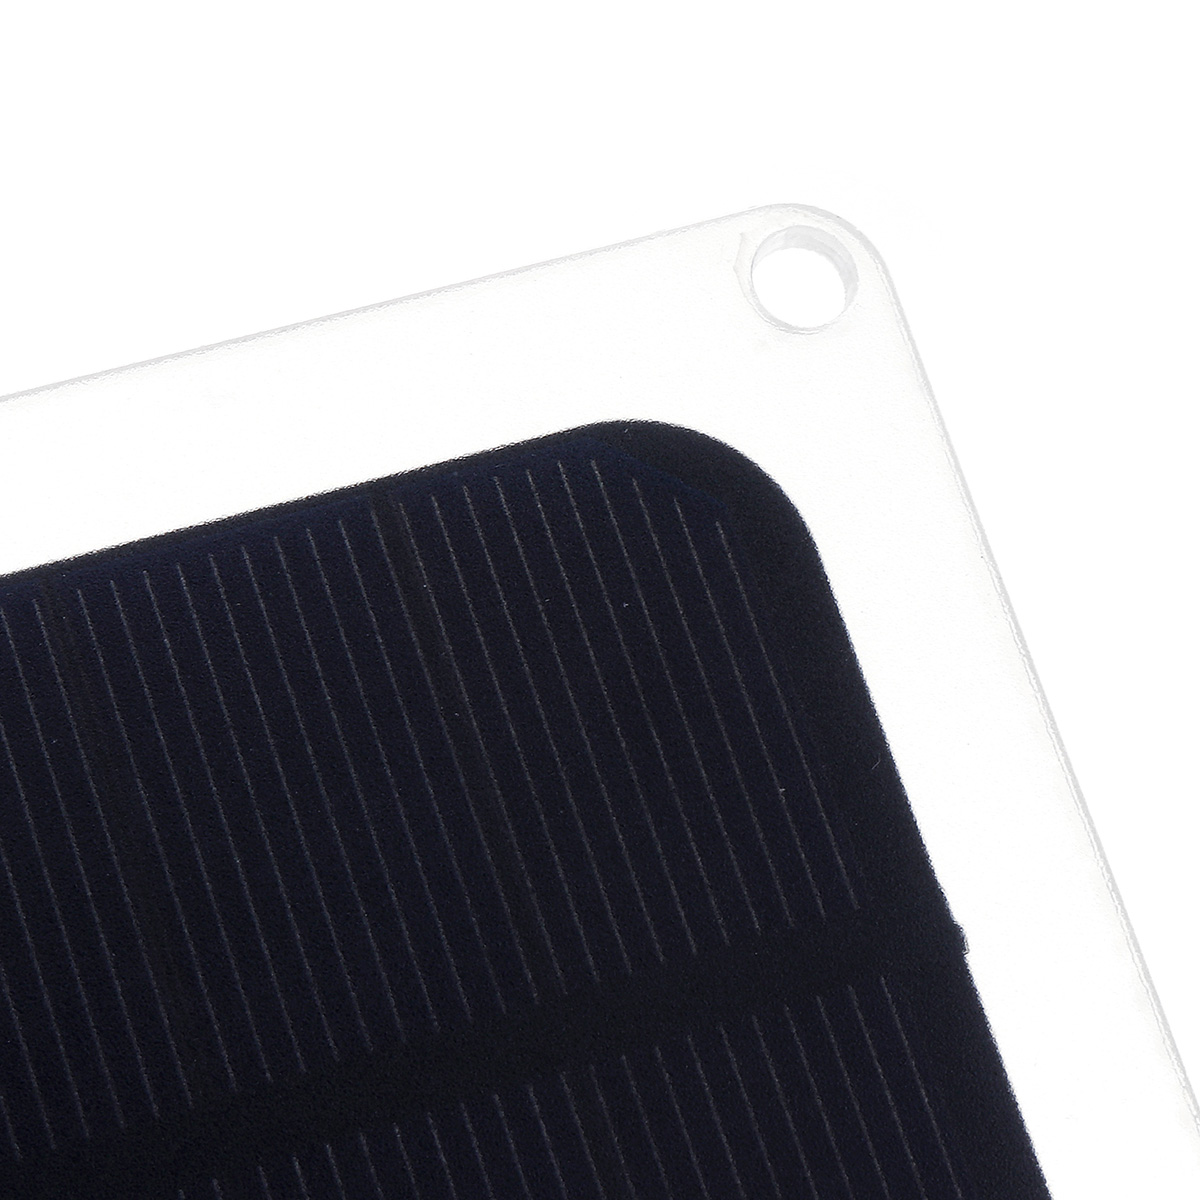 Solar Panel 10W USB 5V 1A Photovoltaic Panel 240X145X3mm Sunpower With Bracket Suction Cup Carabine